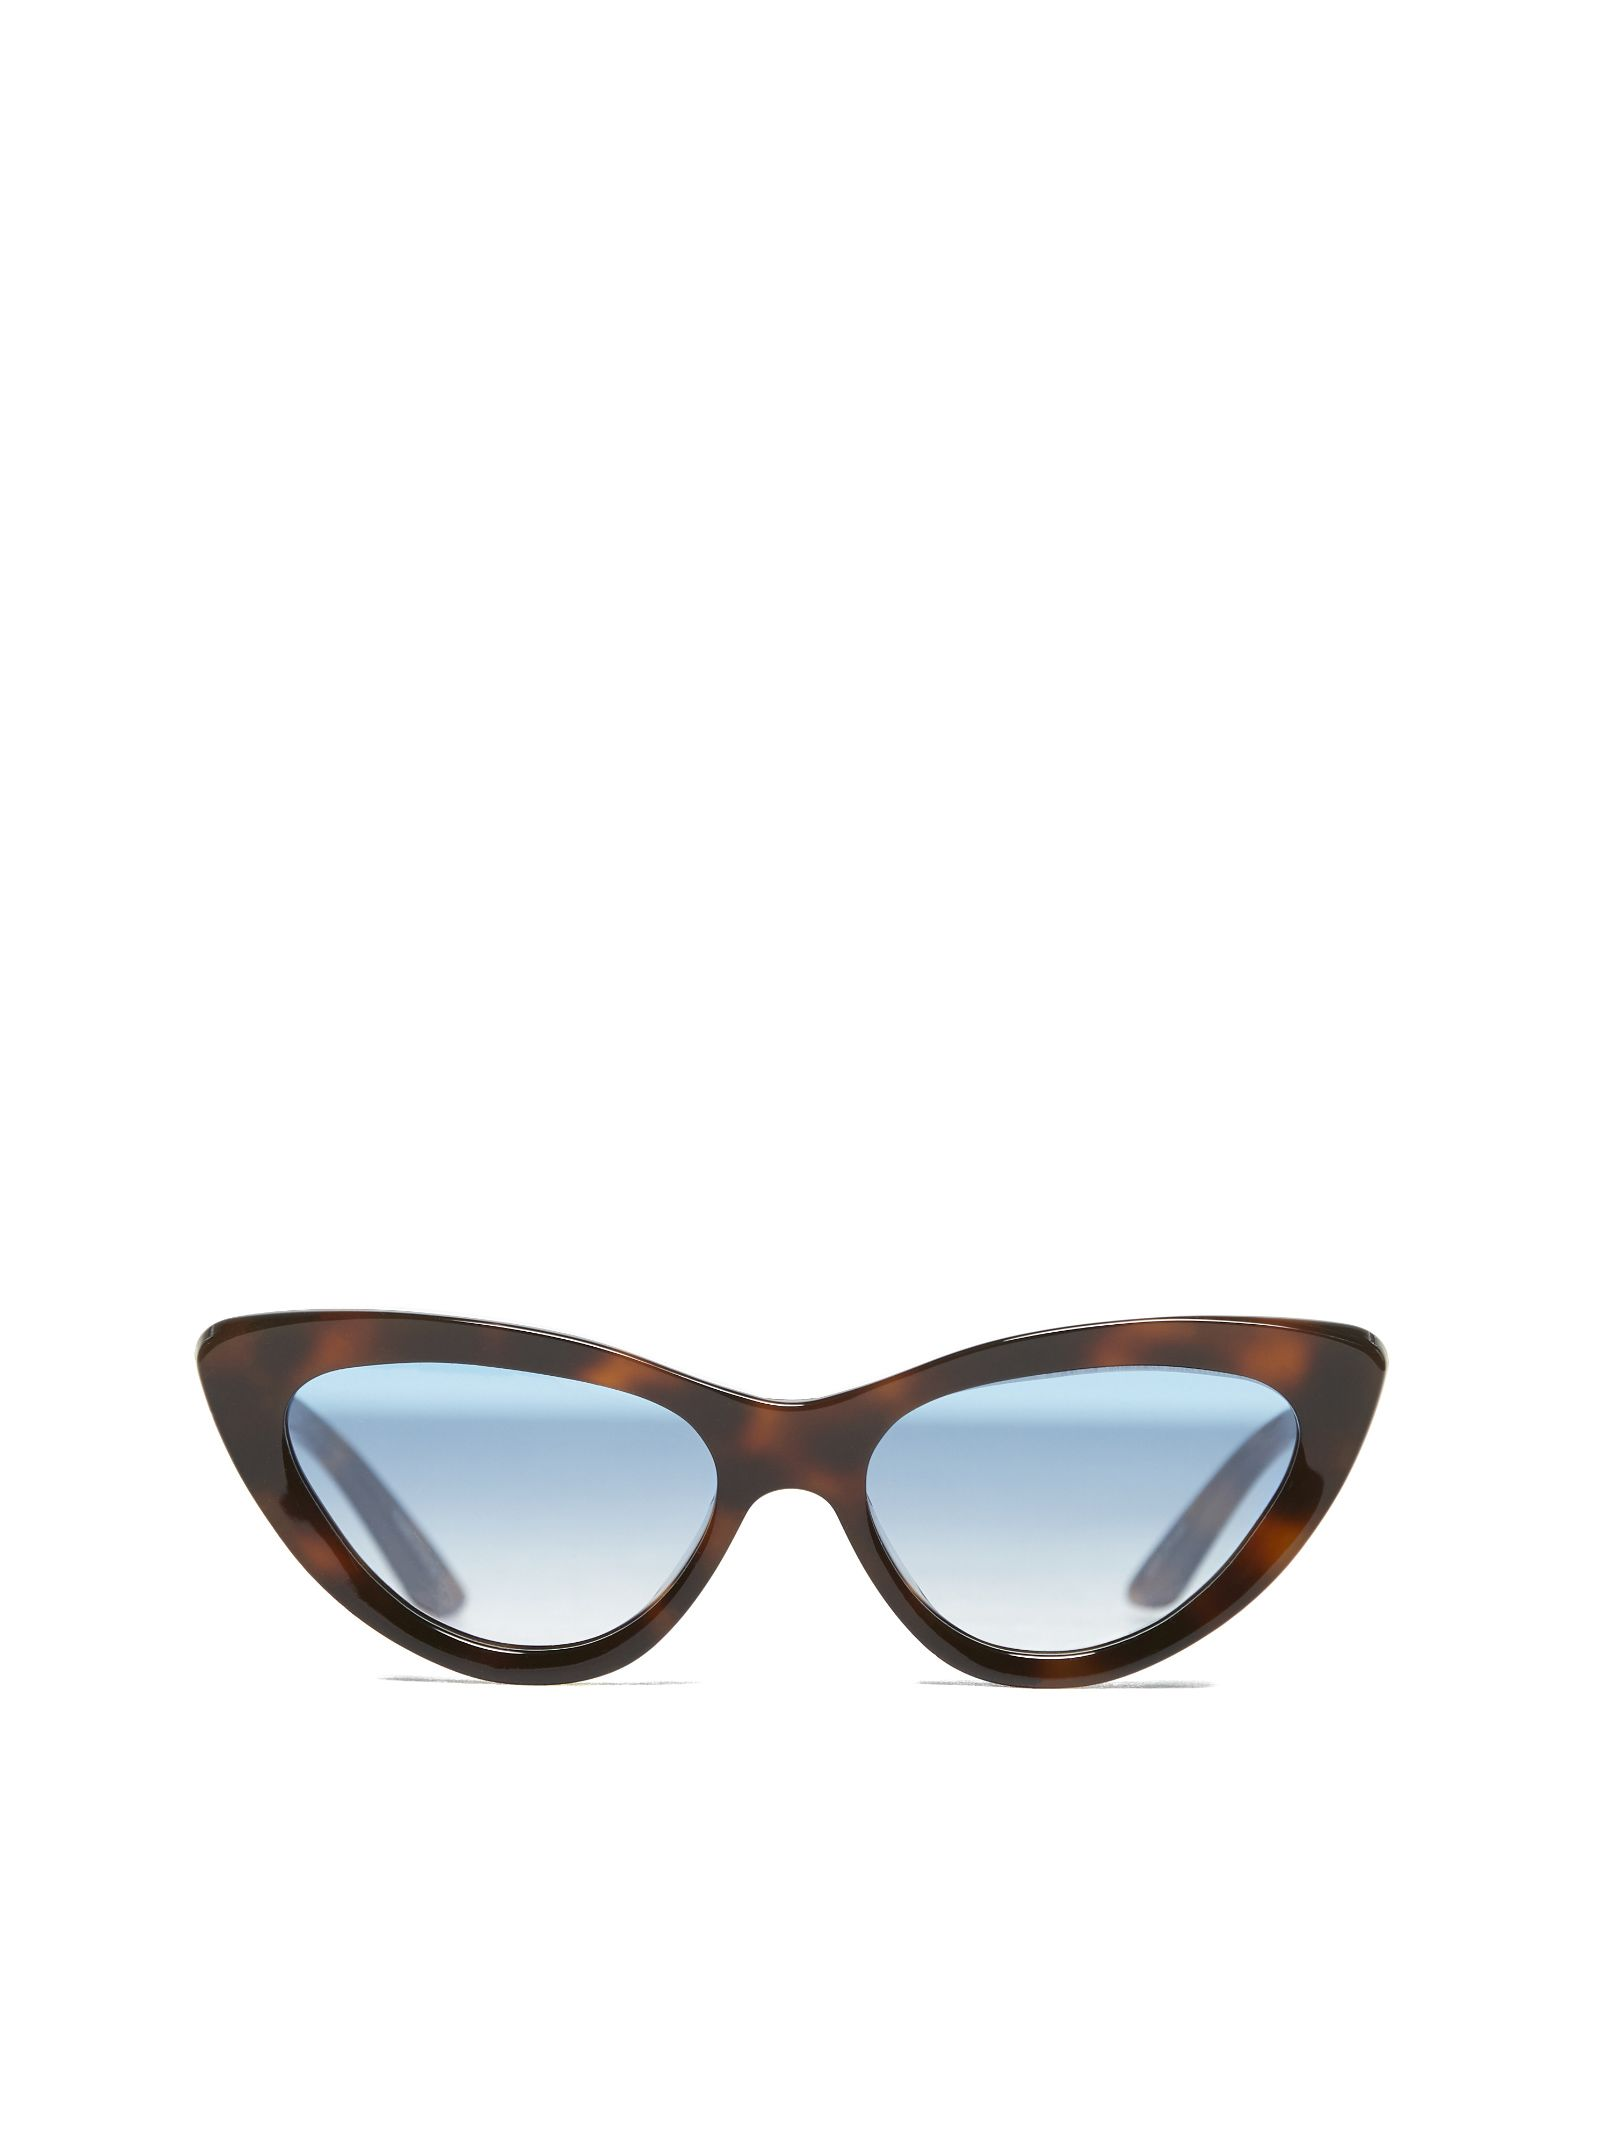 CHRISTIAN ROTH Spotted Sunglasses in Maculato